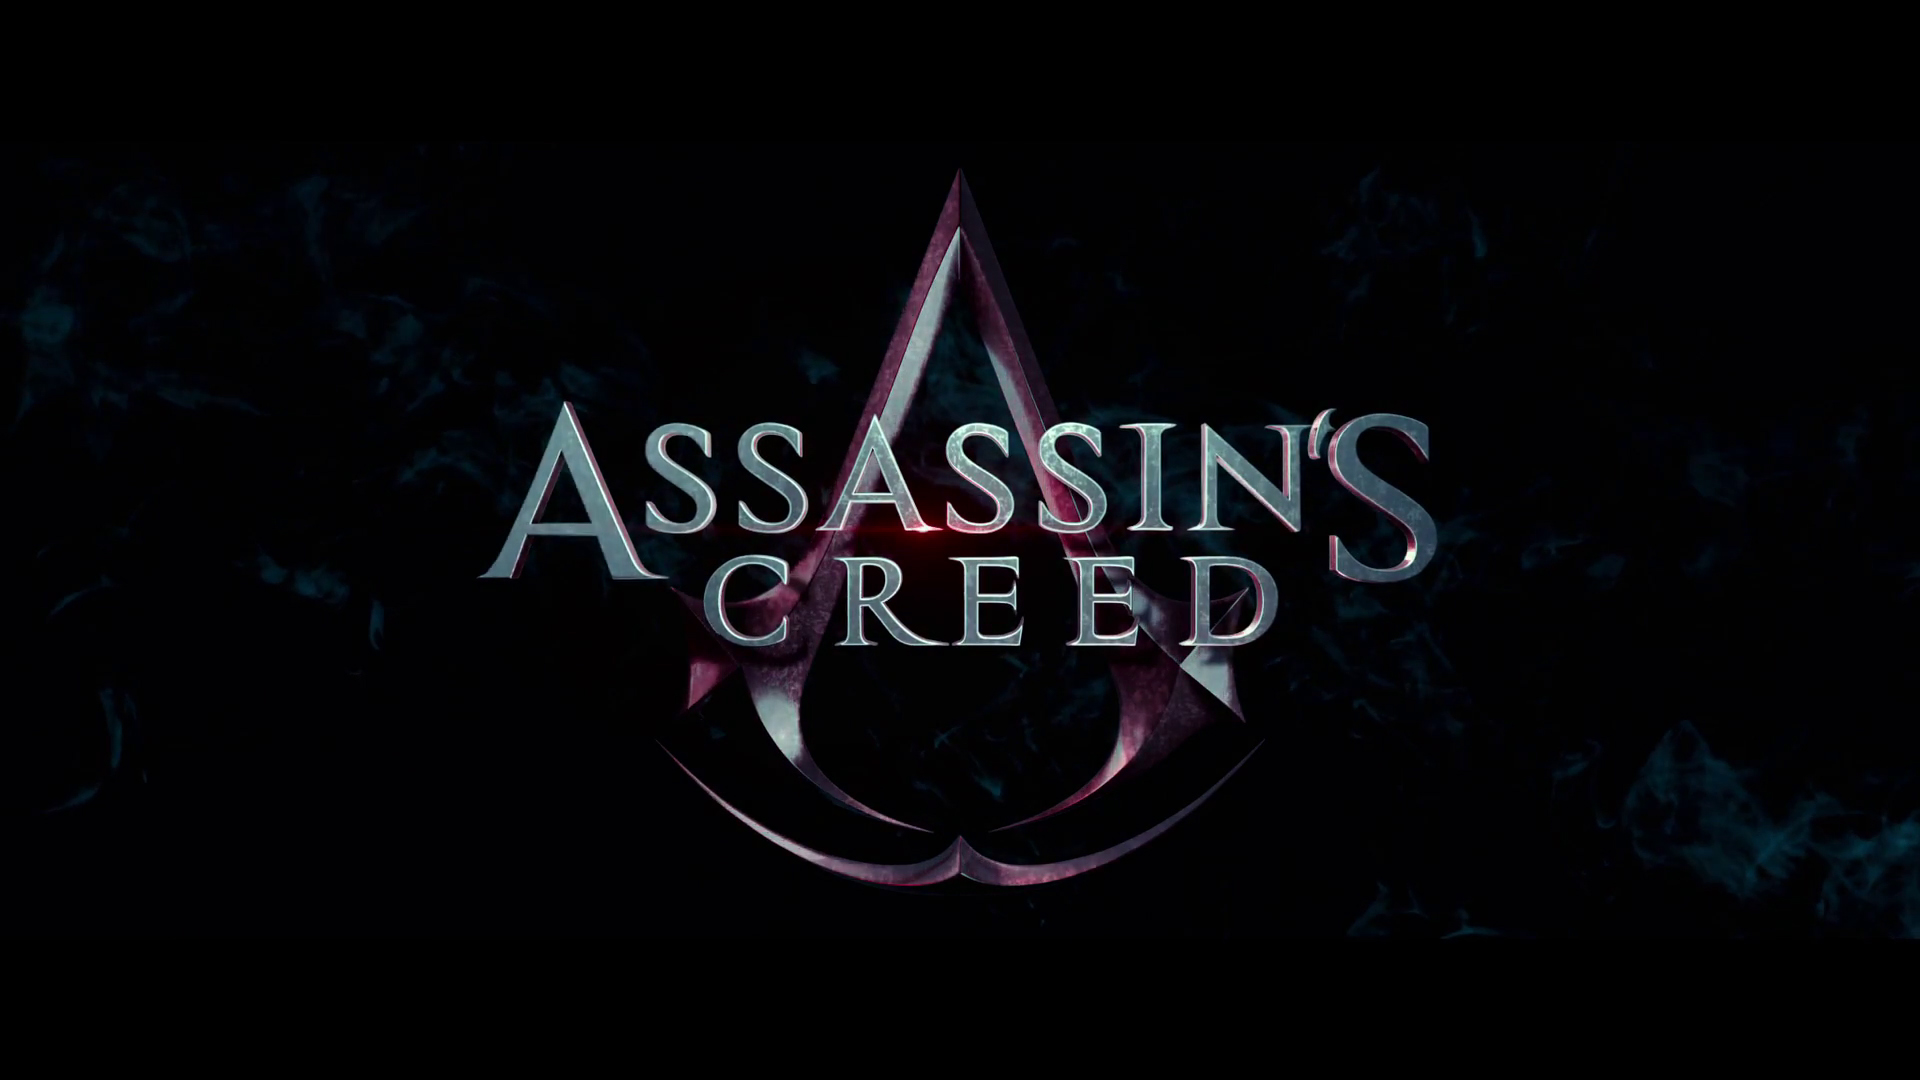 Assassin S Creed Logo Hd Wallpaper Background Image 1920x1080